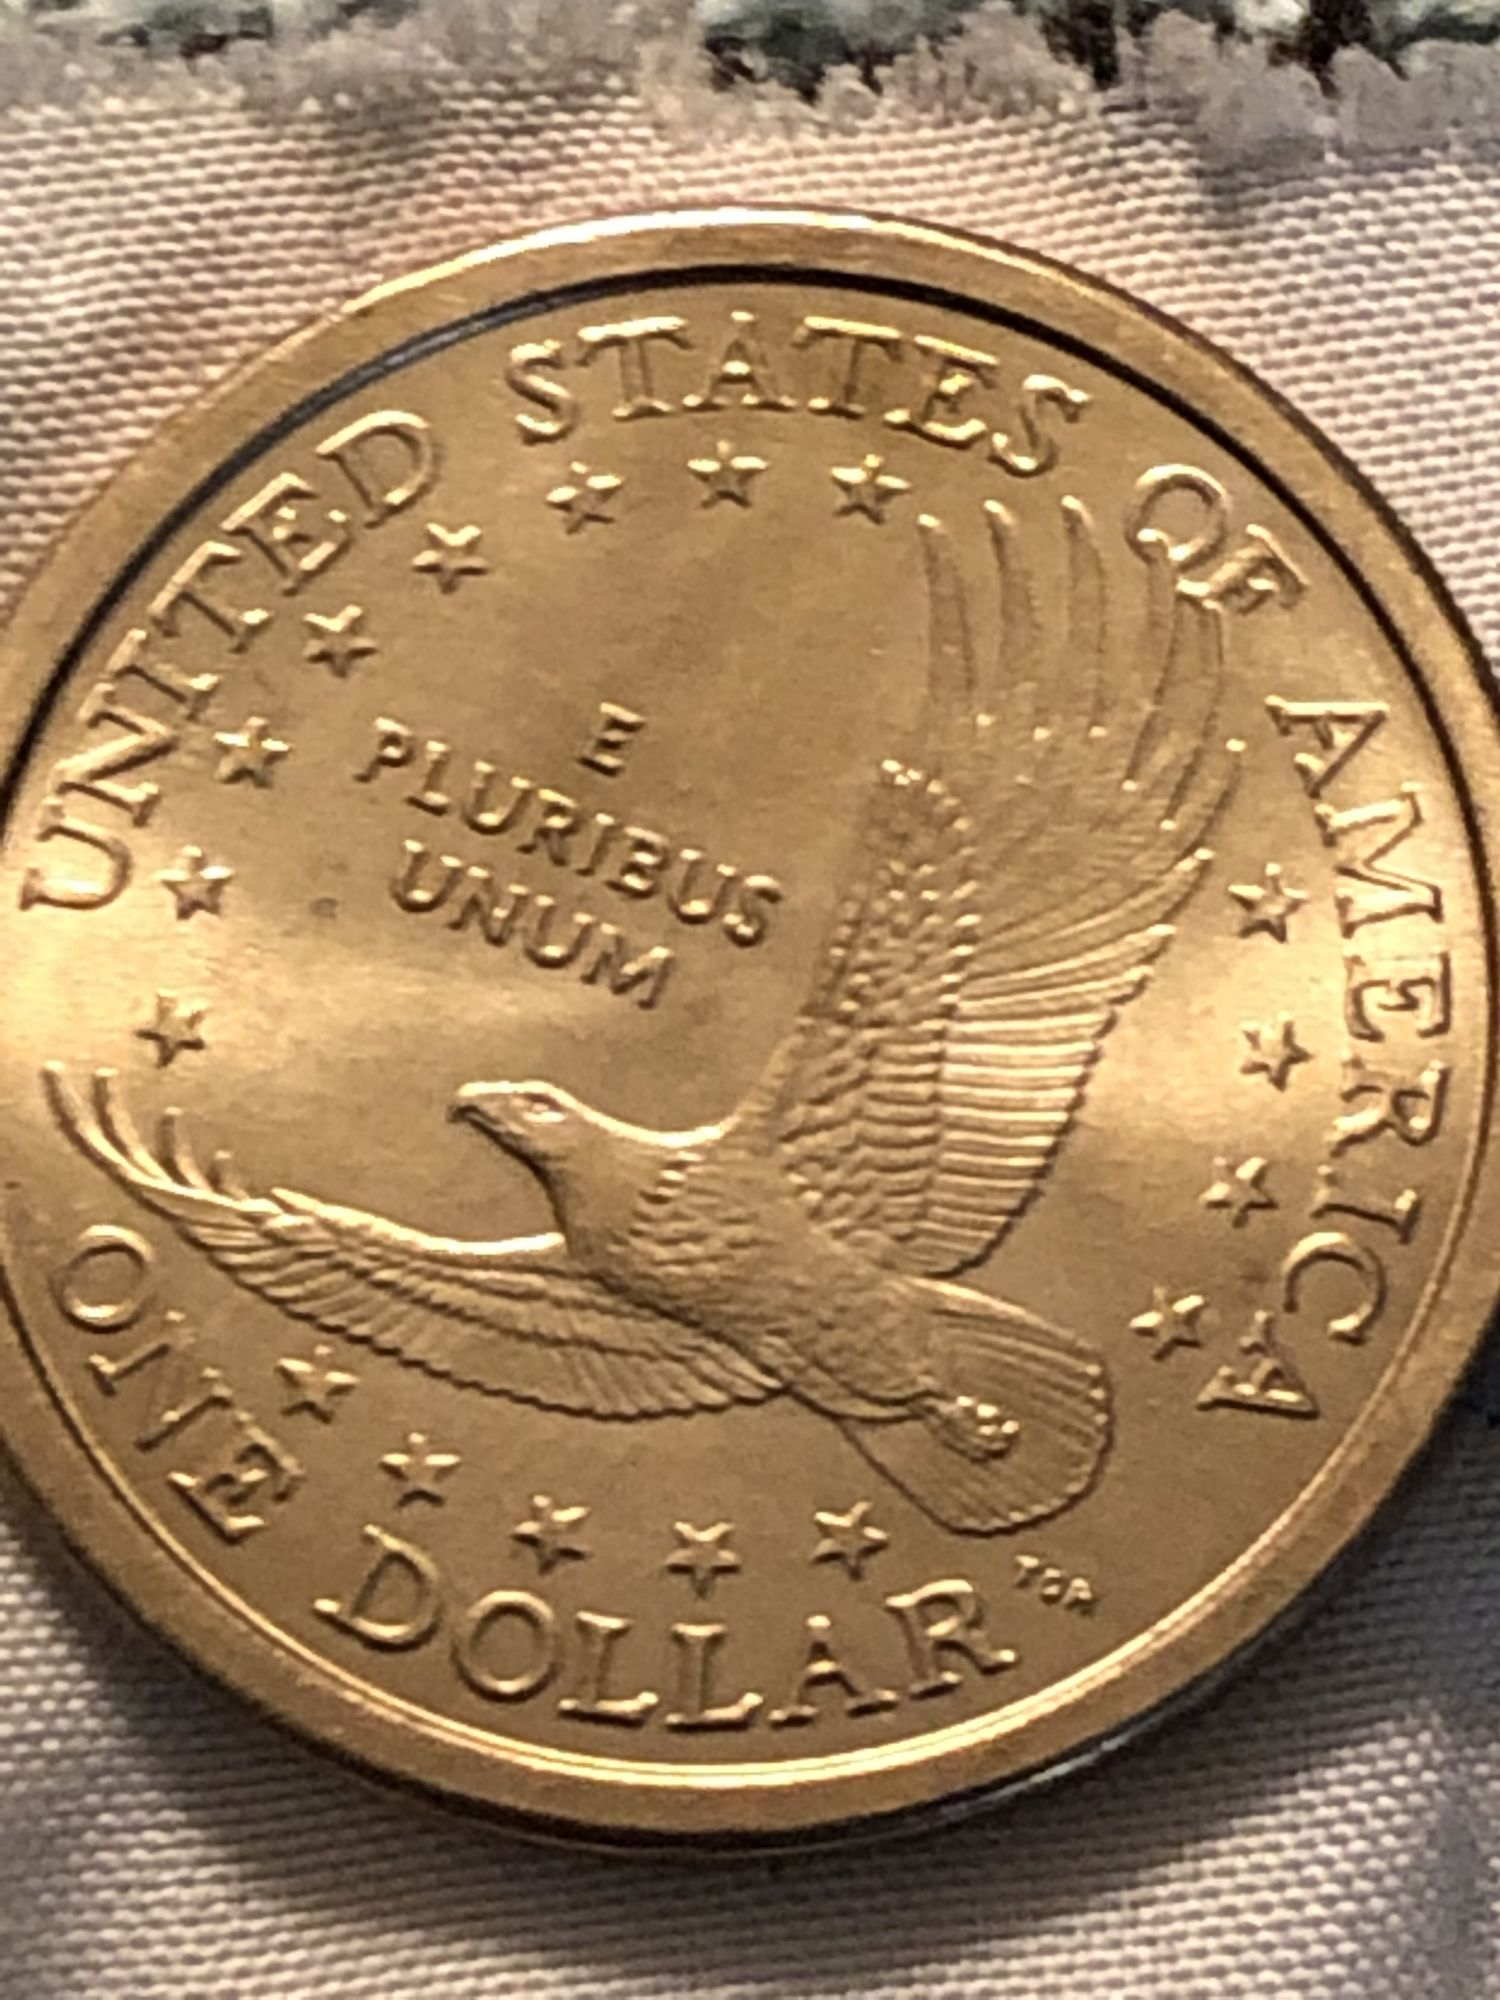 2000 p Sacagawea wounded eagle? - Newbie Coin Collecting Questions